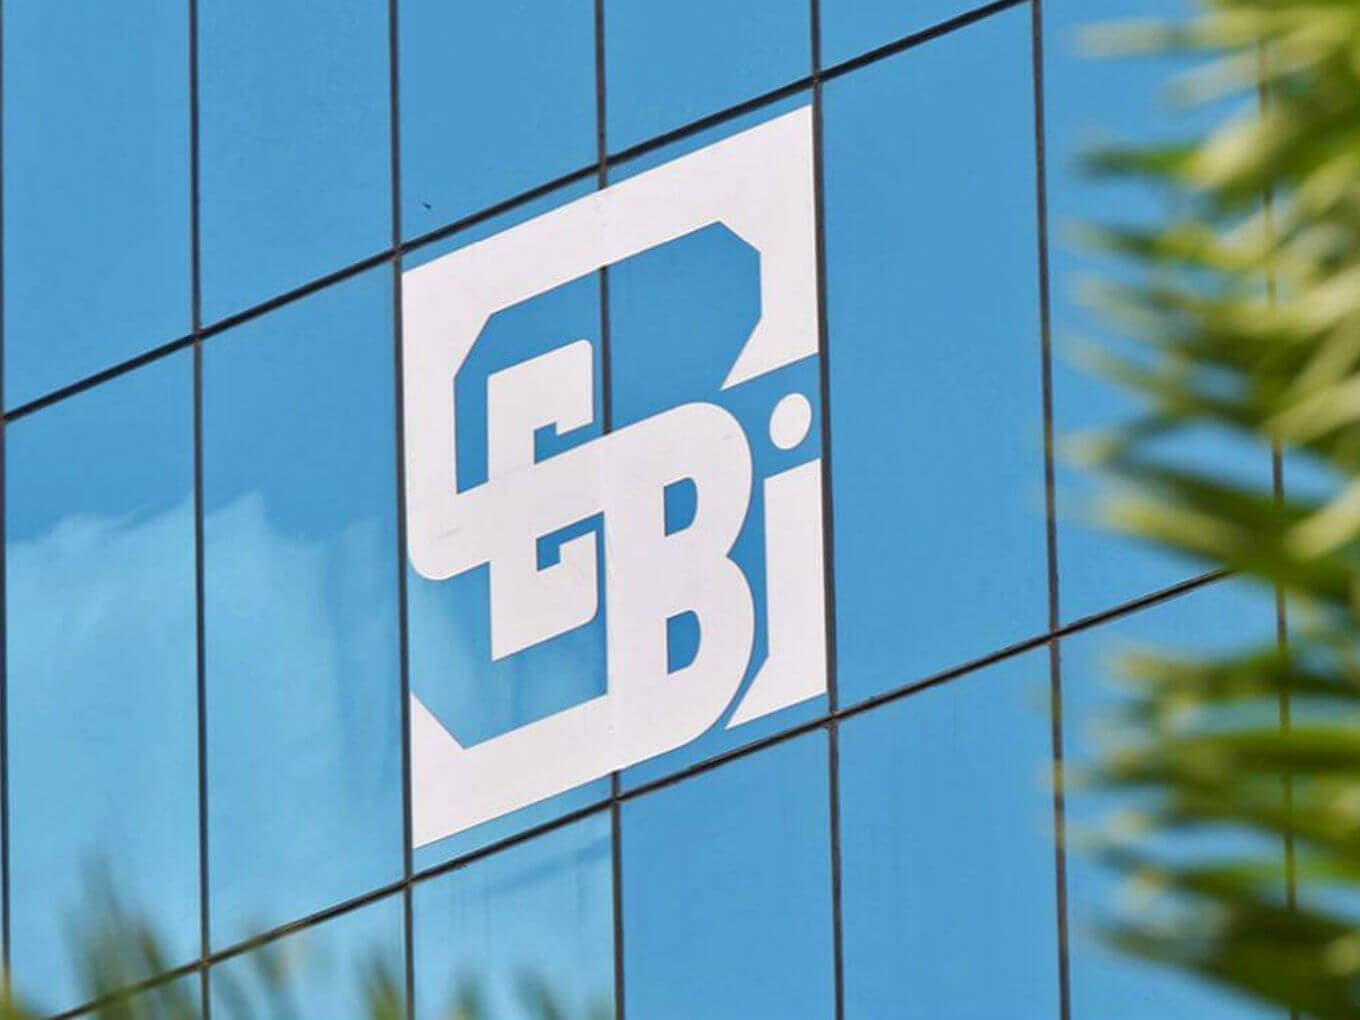 SEBI'S proposal to simplify listing of startups